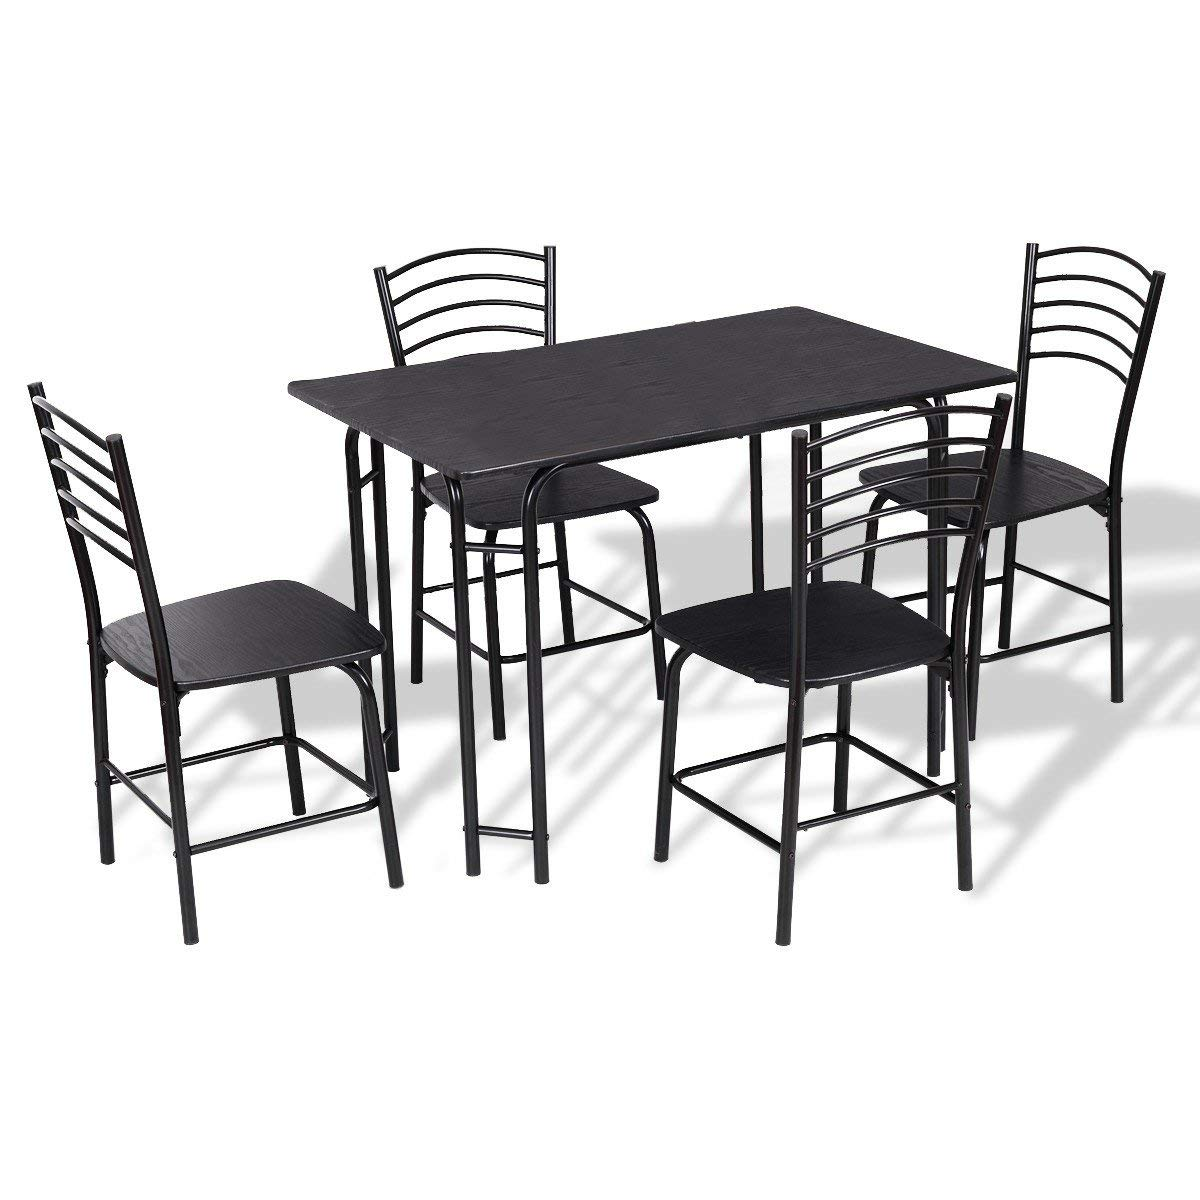 Imtinanz Modern Style 5 Pieces Black Dining Table and 4 Chairs Set